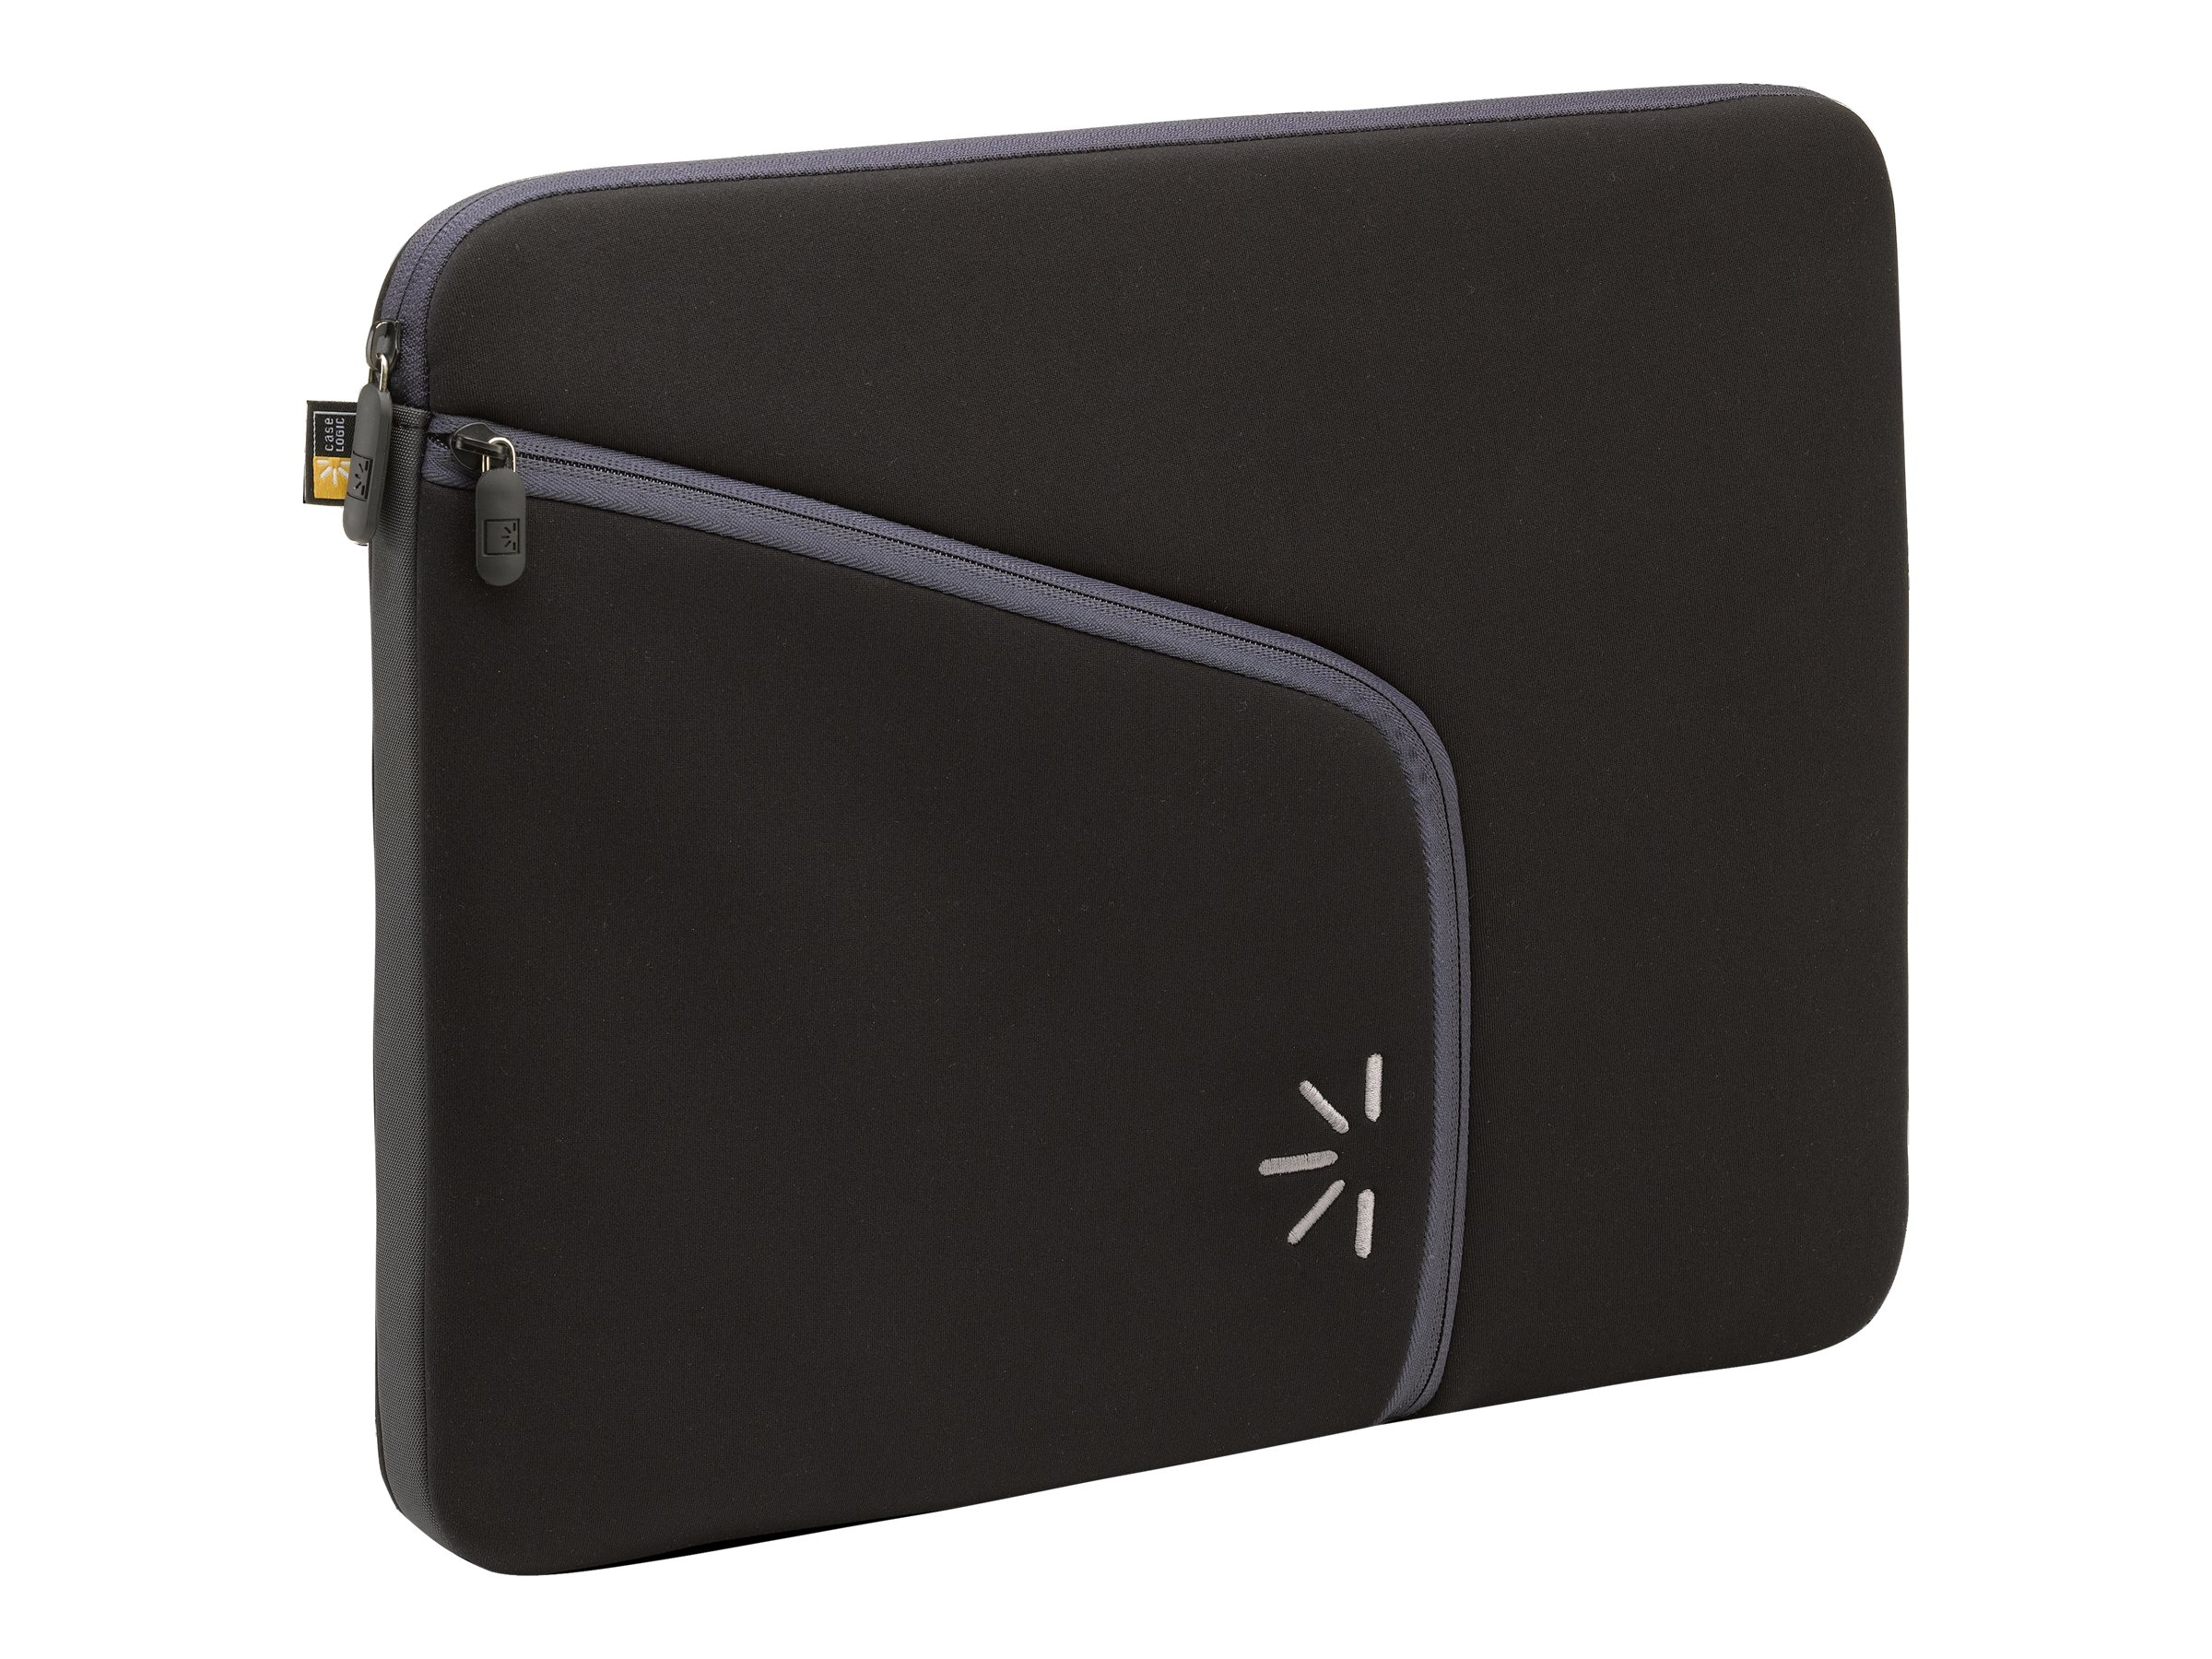 Case Logic 16 Neoprene Laptop Sleeve, Black, PLS-15 BLACK, 9870248, Protective & Dust Covers